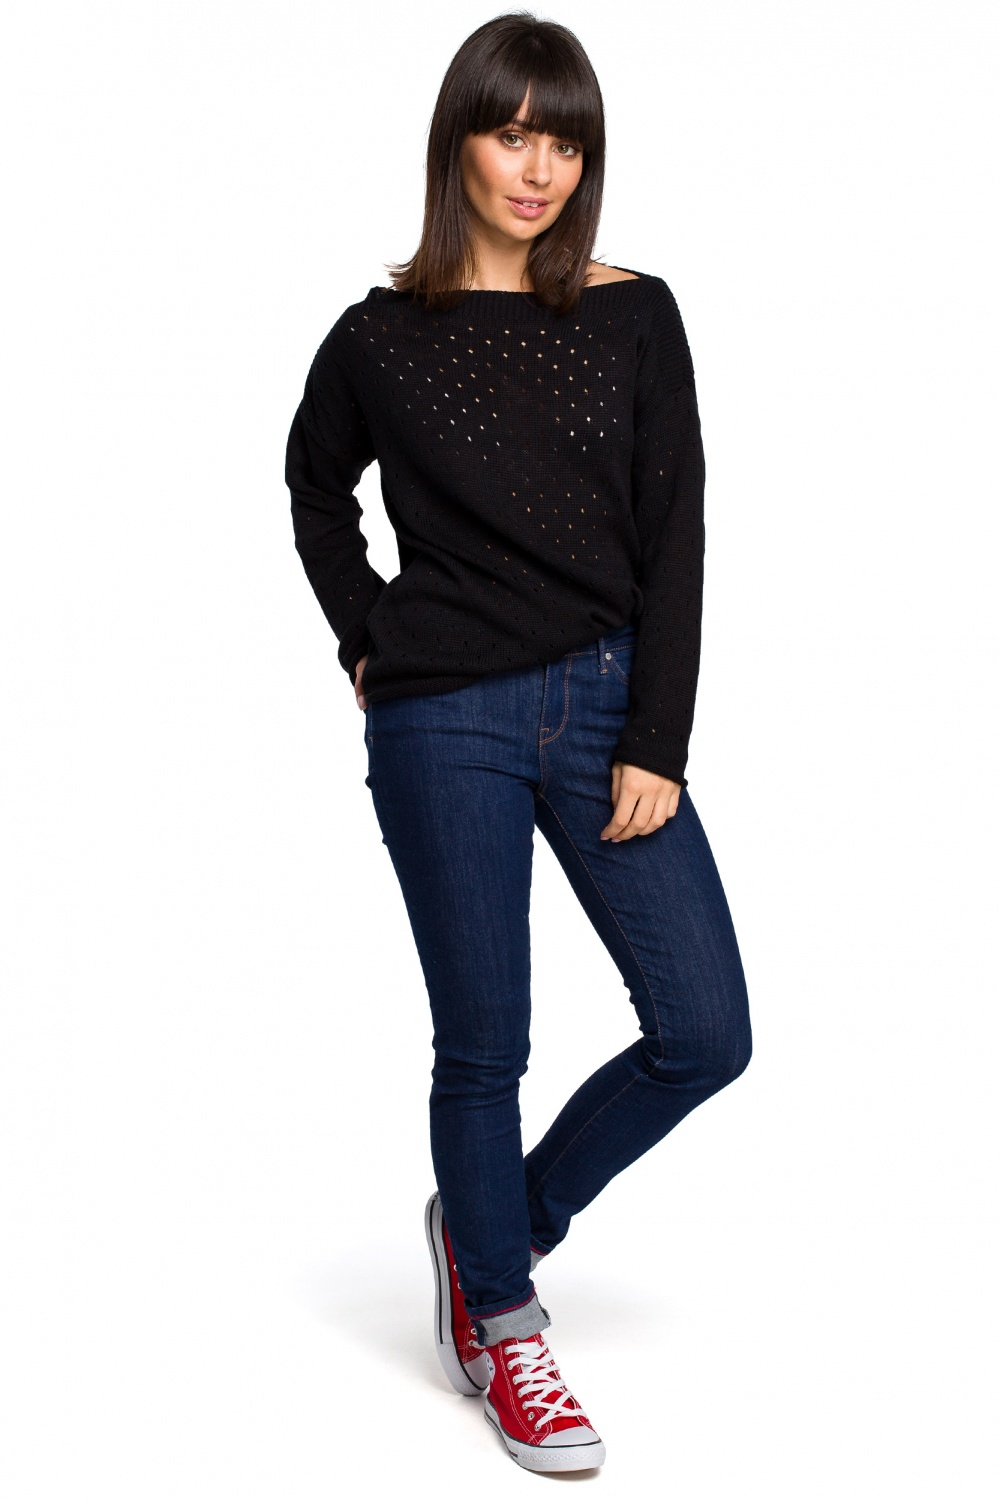 Pulover model 129160 BE Knit